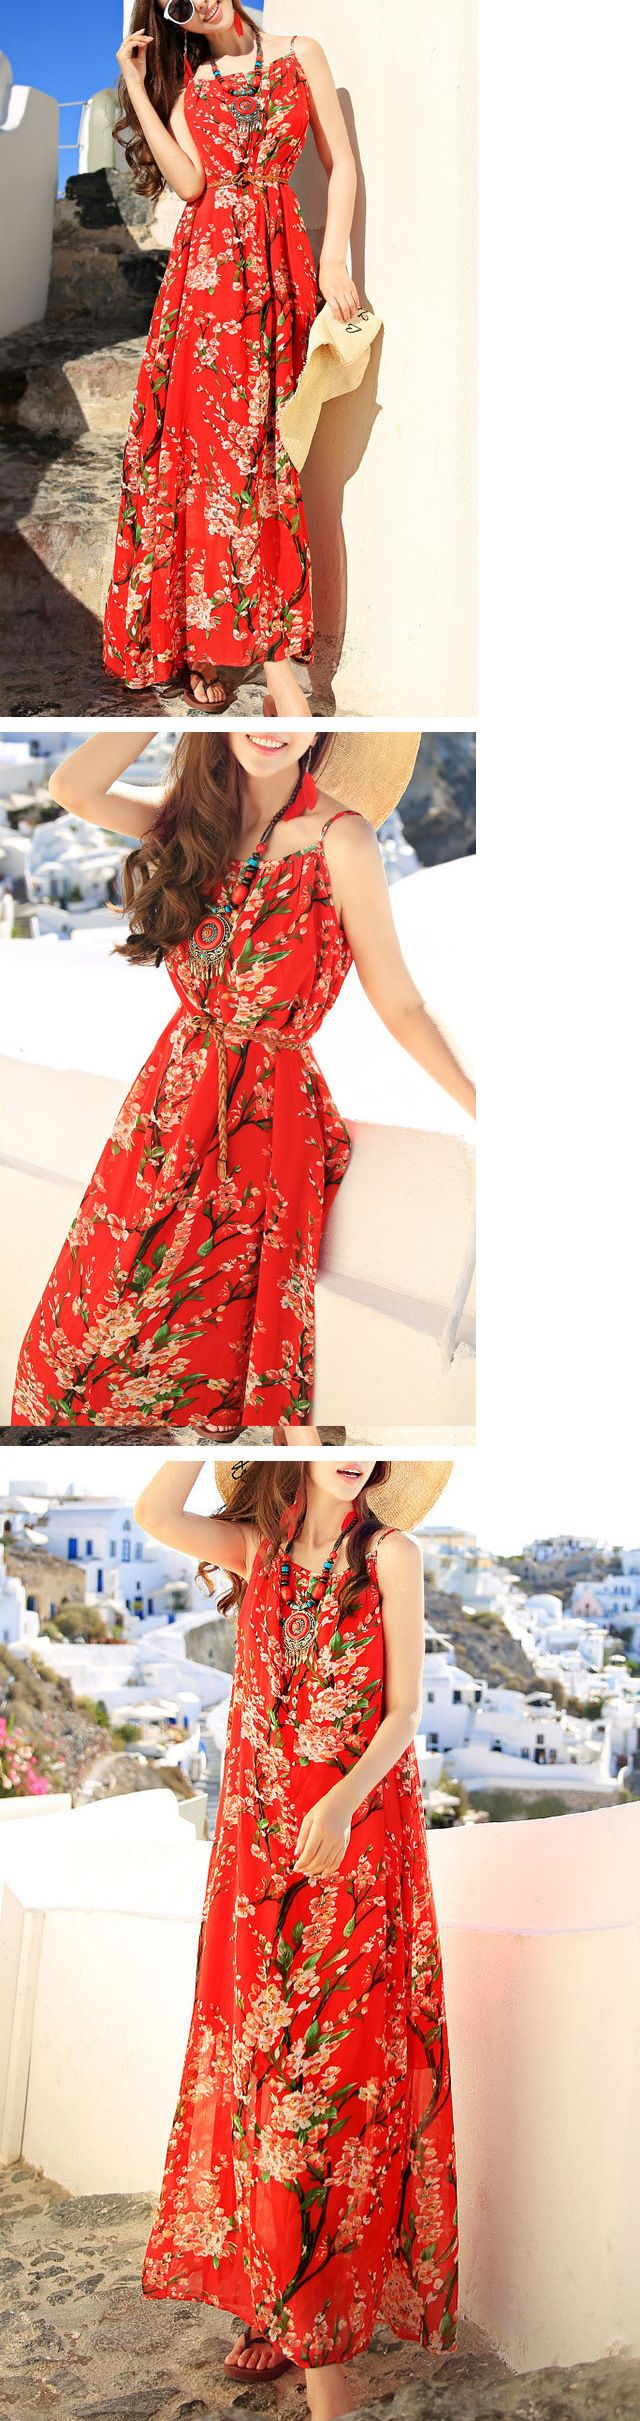 Red Cami Dress with Sash